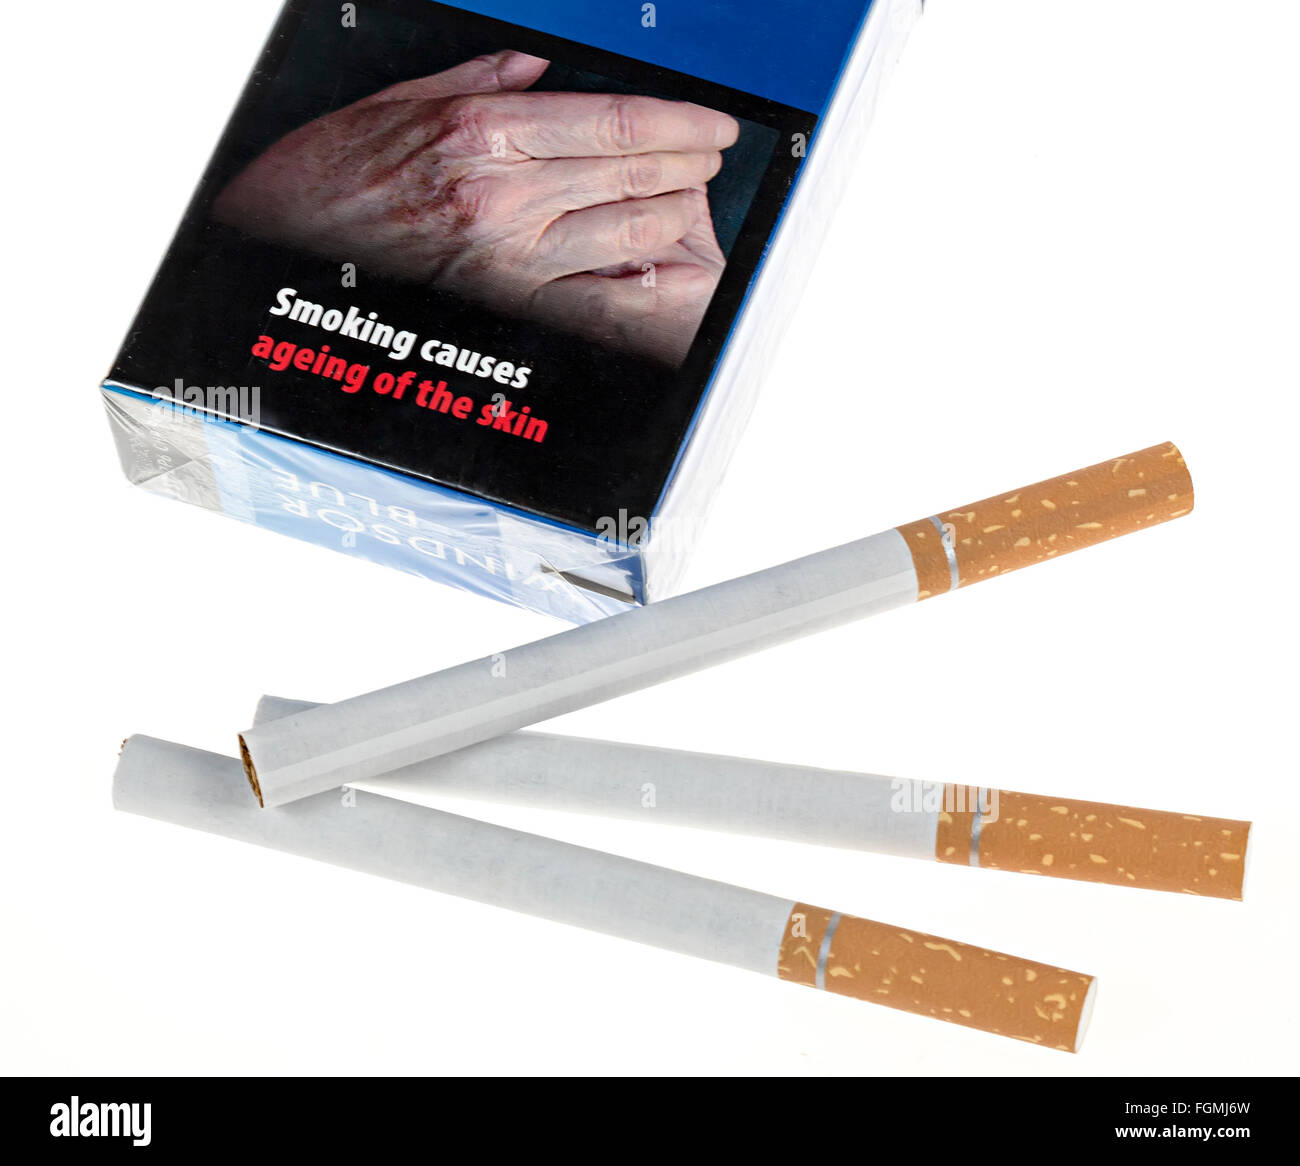 Cigarettes with packet and warning that smoking causes ageing of the skin, UK - Stock Image